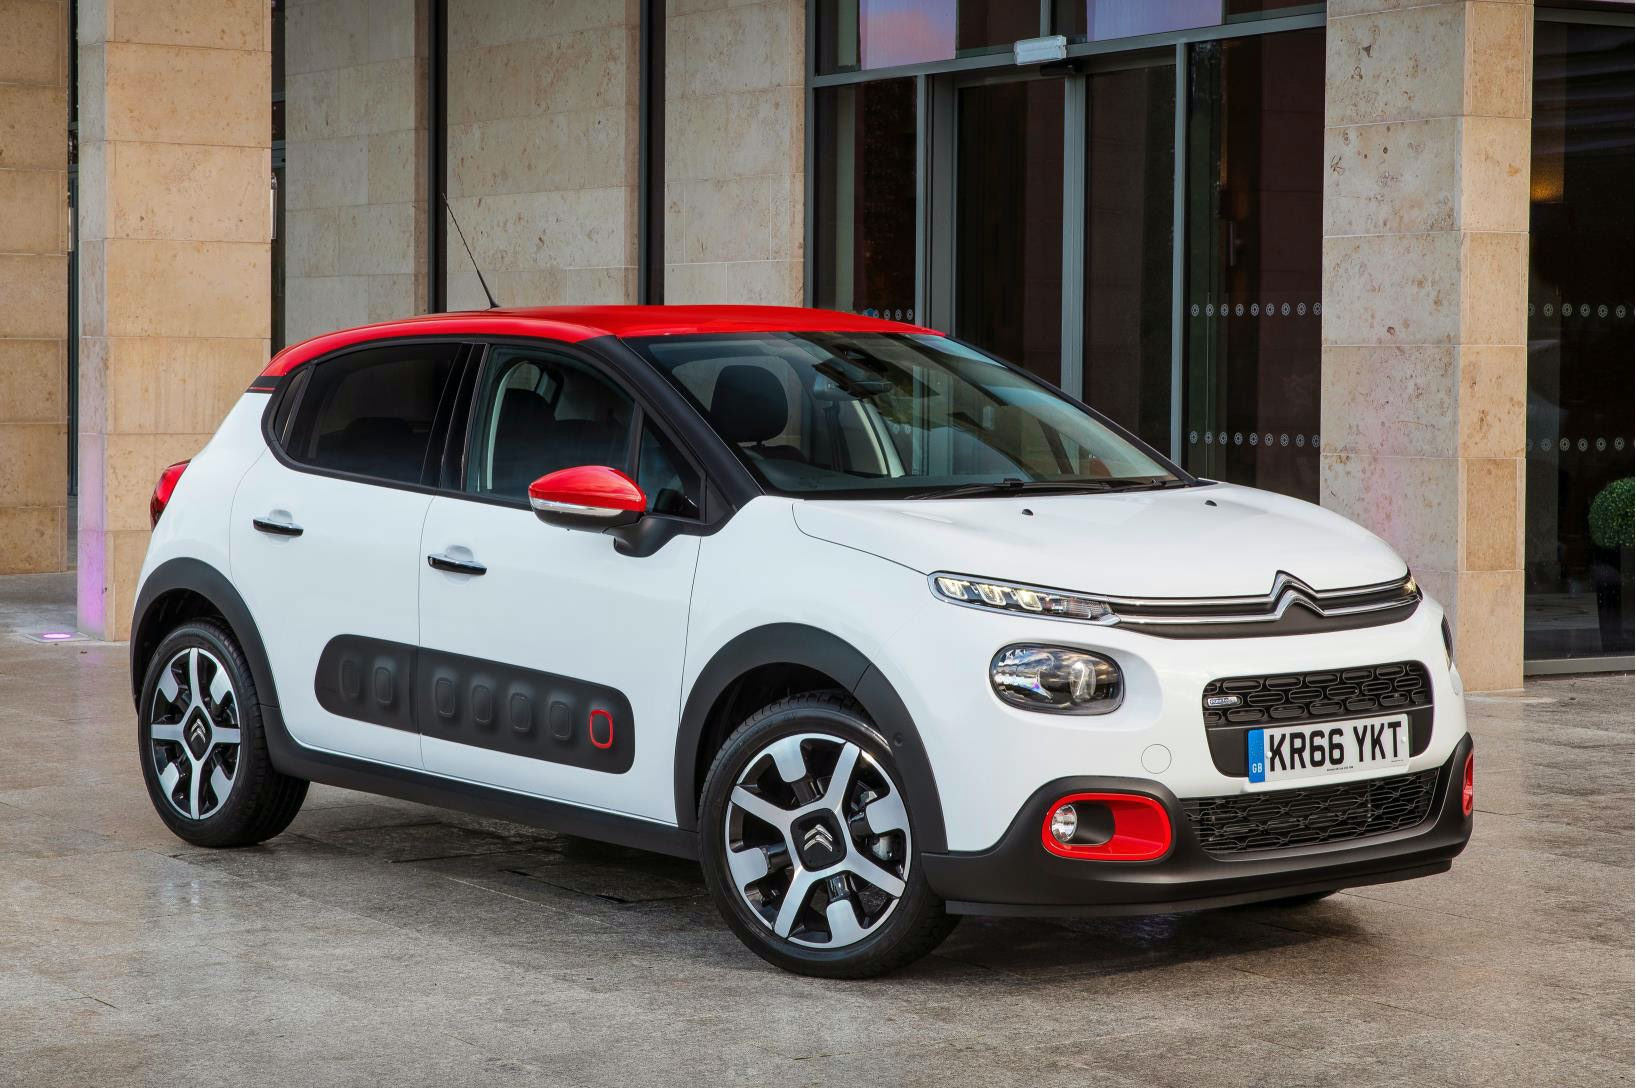 Citroen C3 is funky looking and can be had from £10,000.